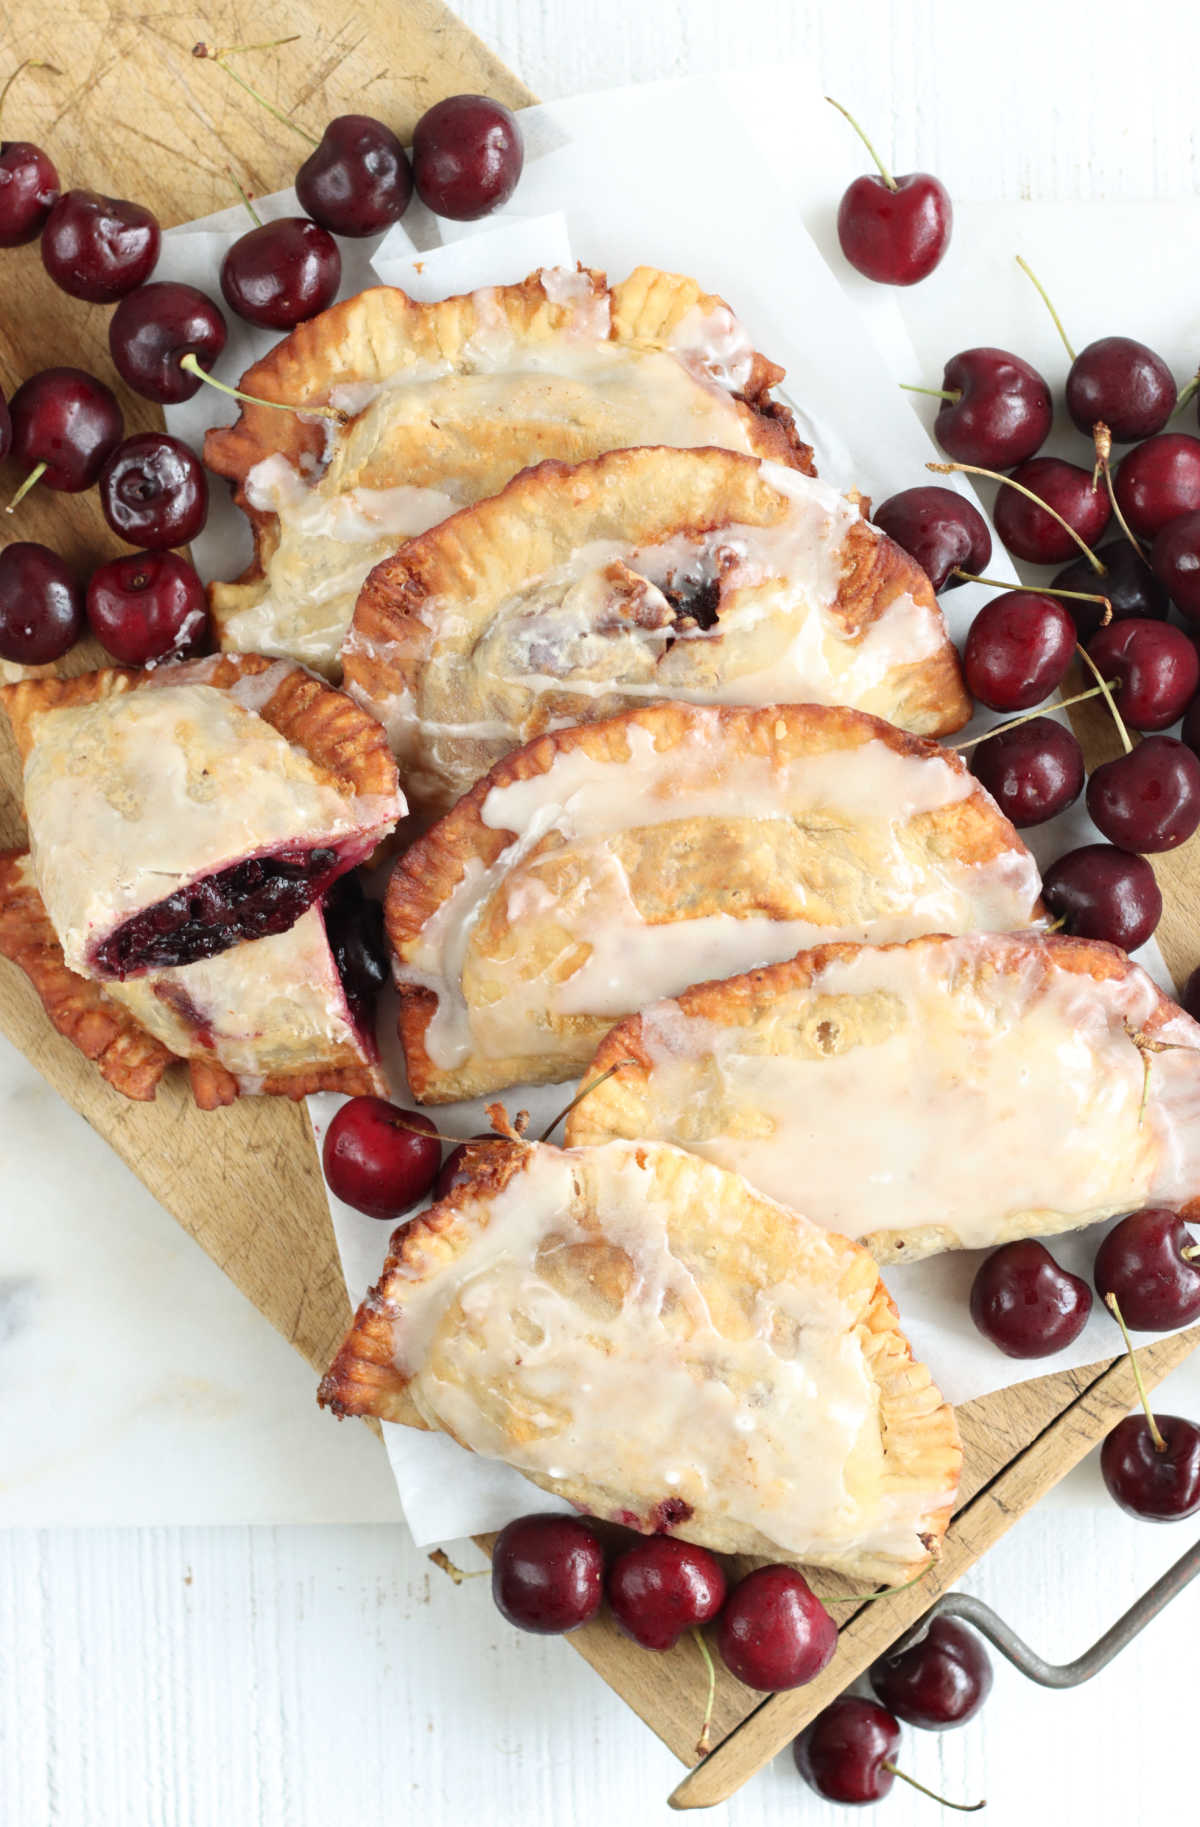 Cherry hand pies leaning against each other on wooden cutting board, fresh cherries around.